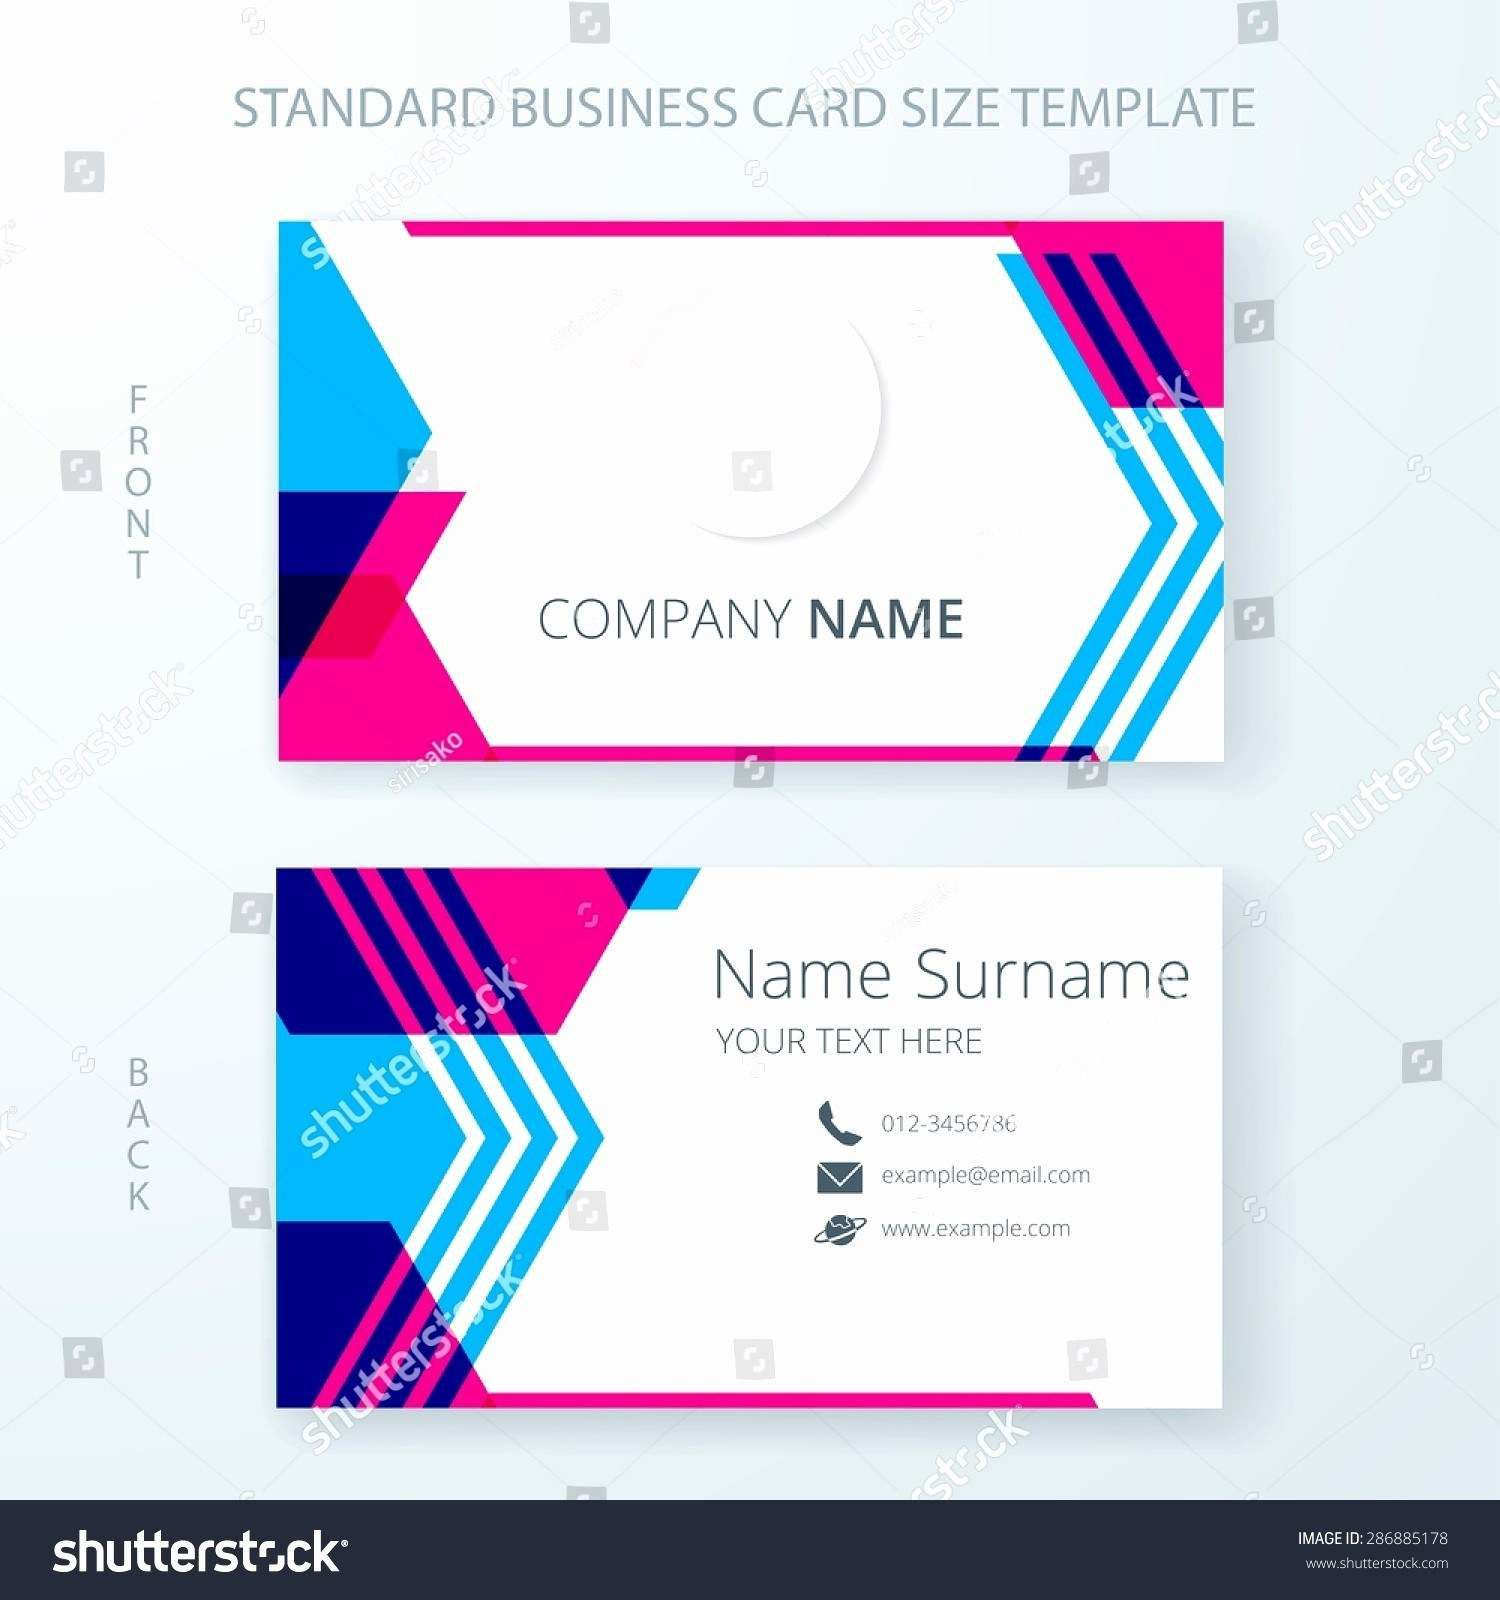 Gartner Business Cards Template Best Of Gartner Business Regarding Gartner Business Cards Templ Card Template Recipe Cards Template Standard Business Card Size